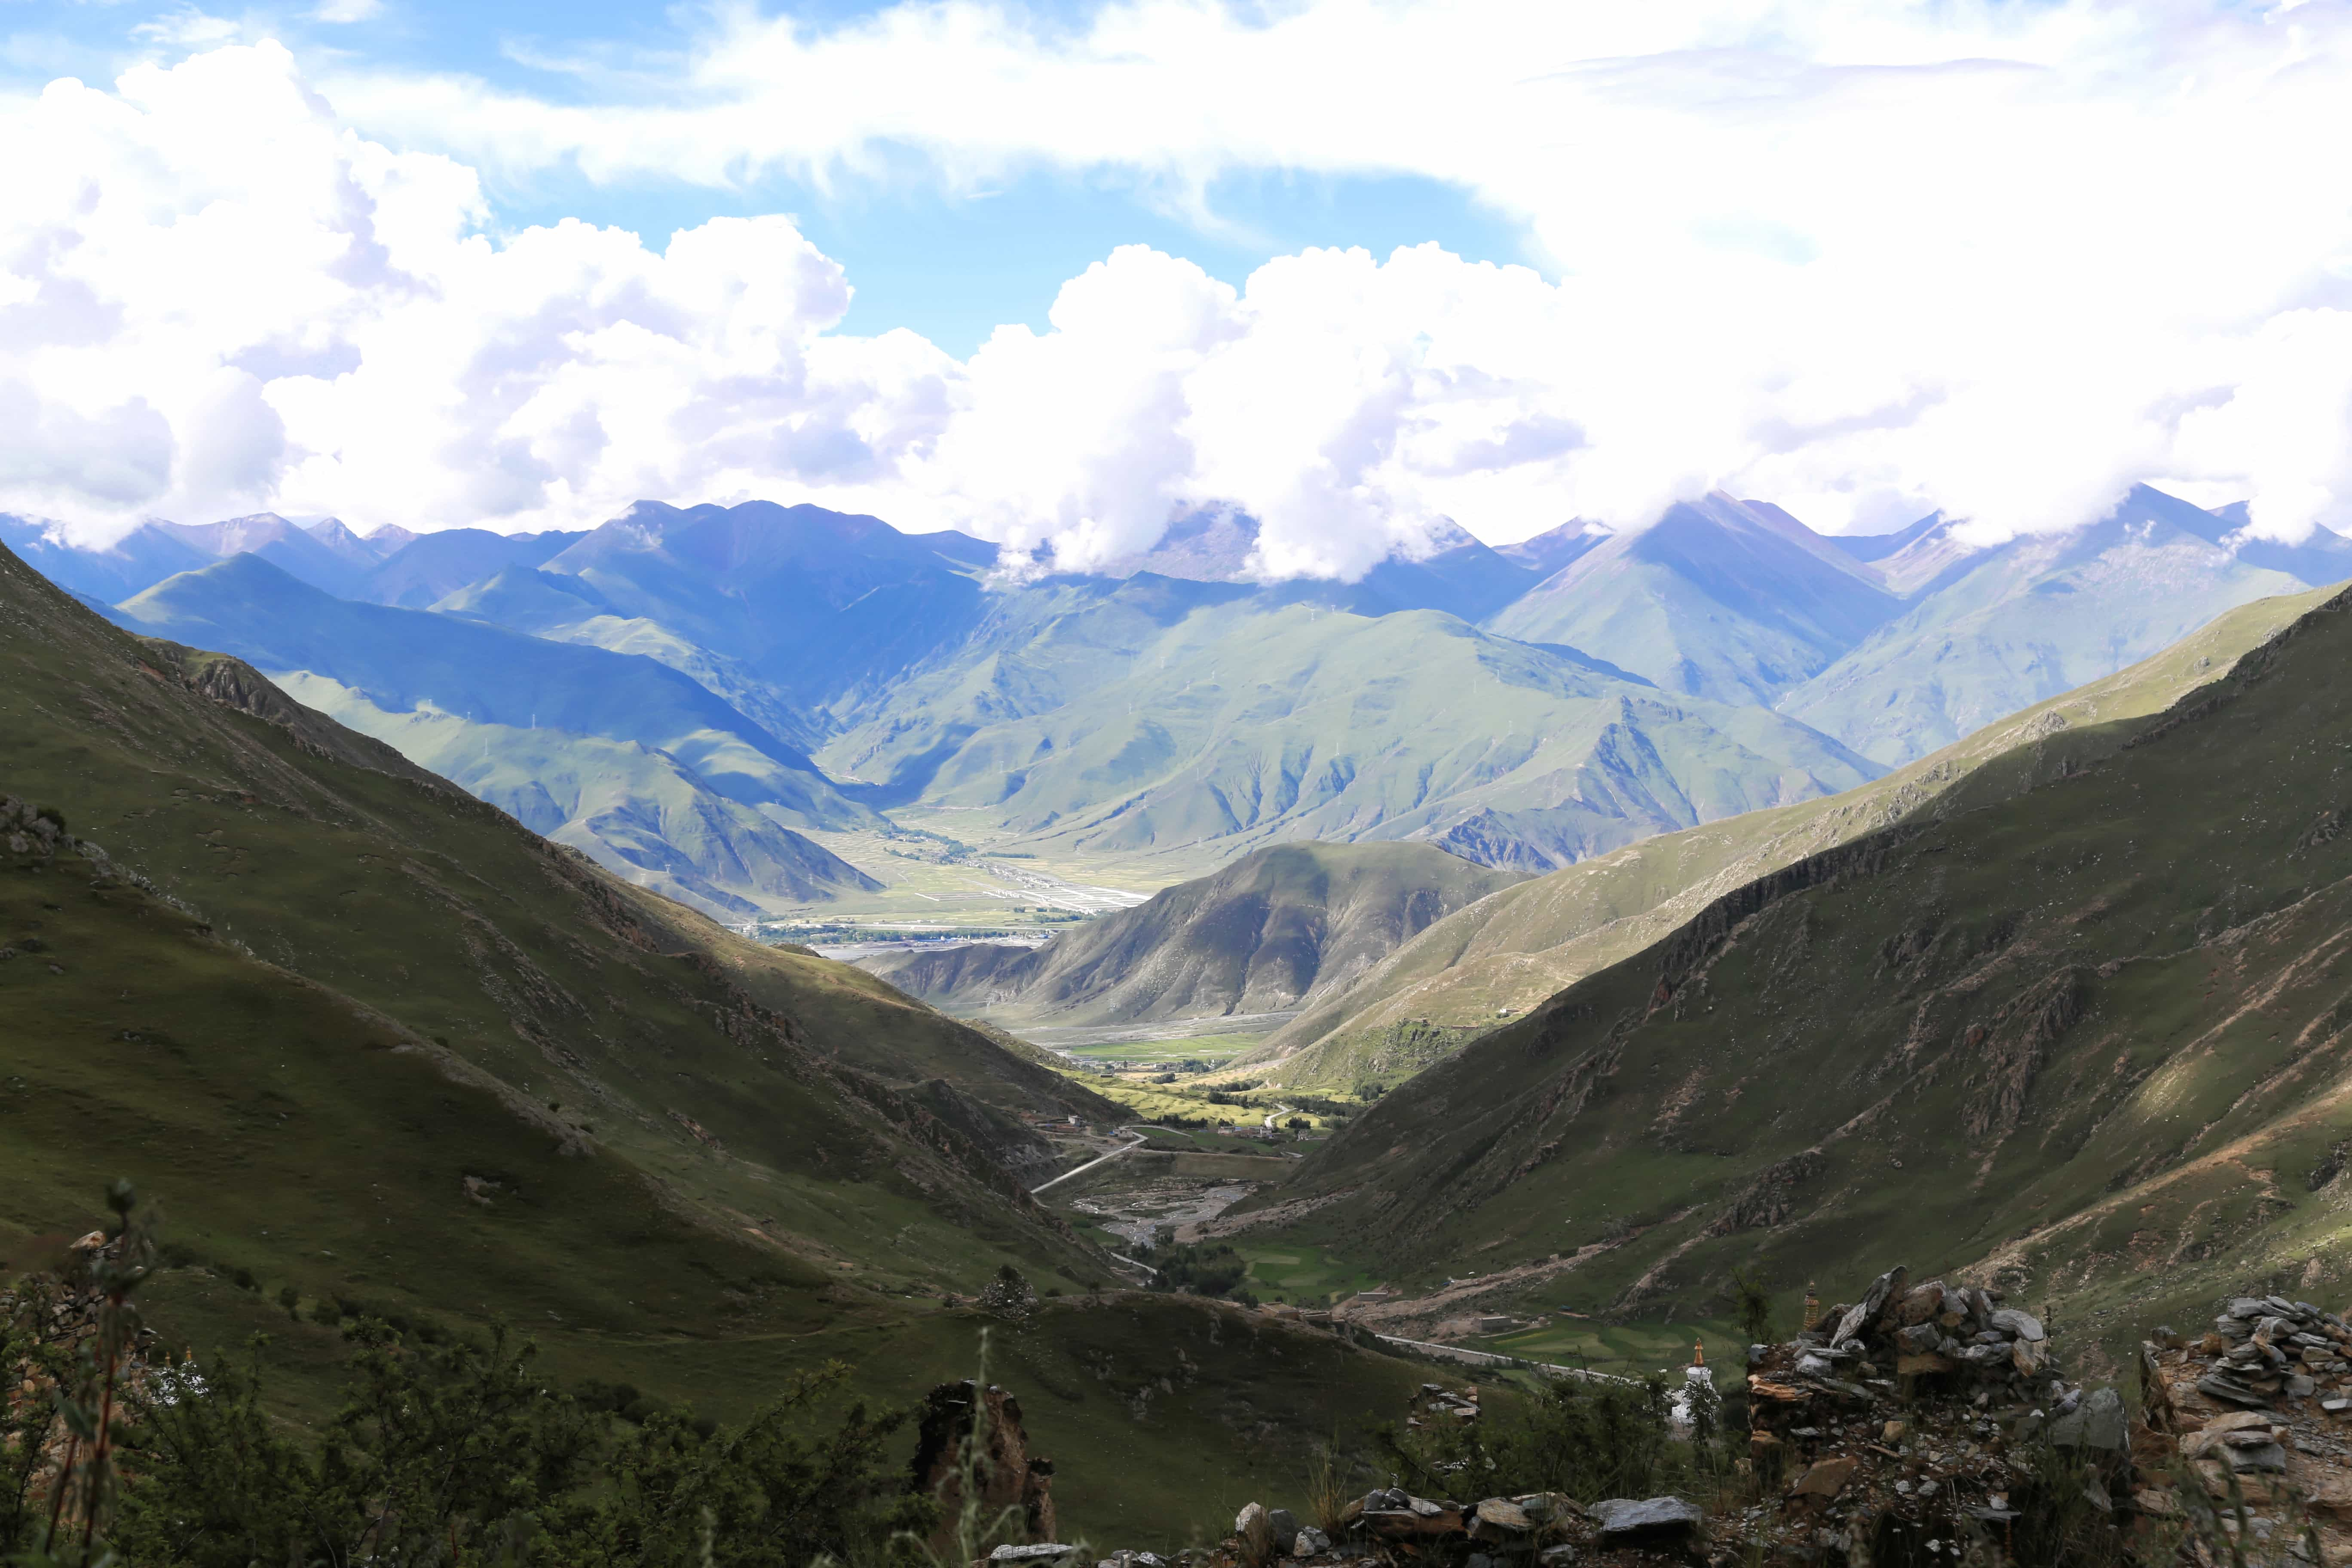 View on the valley from Drak Yerpa